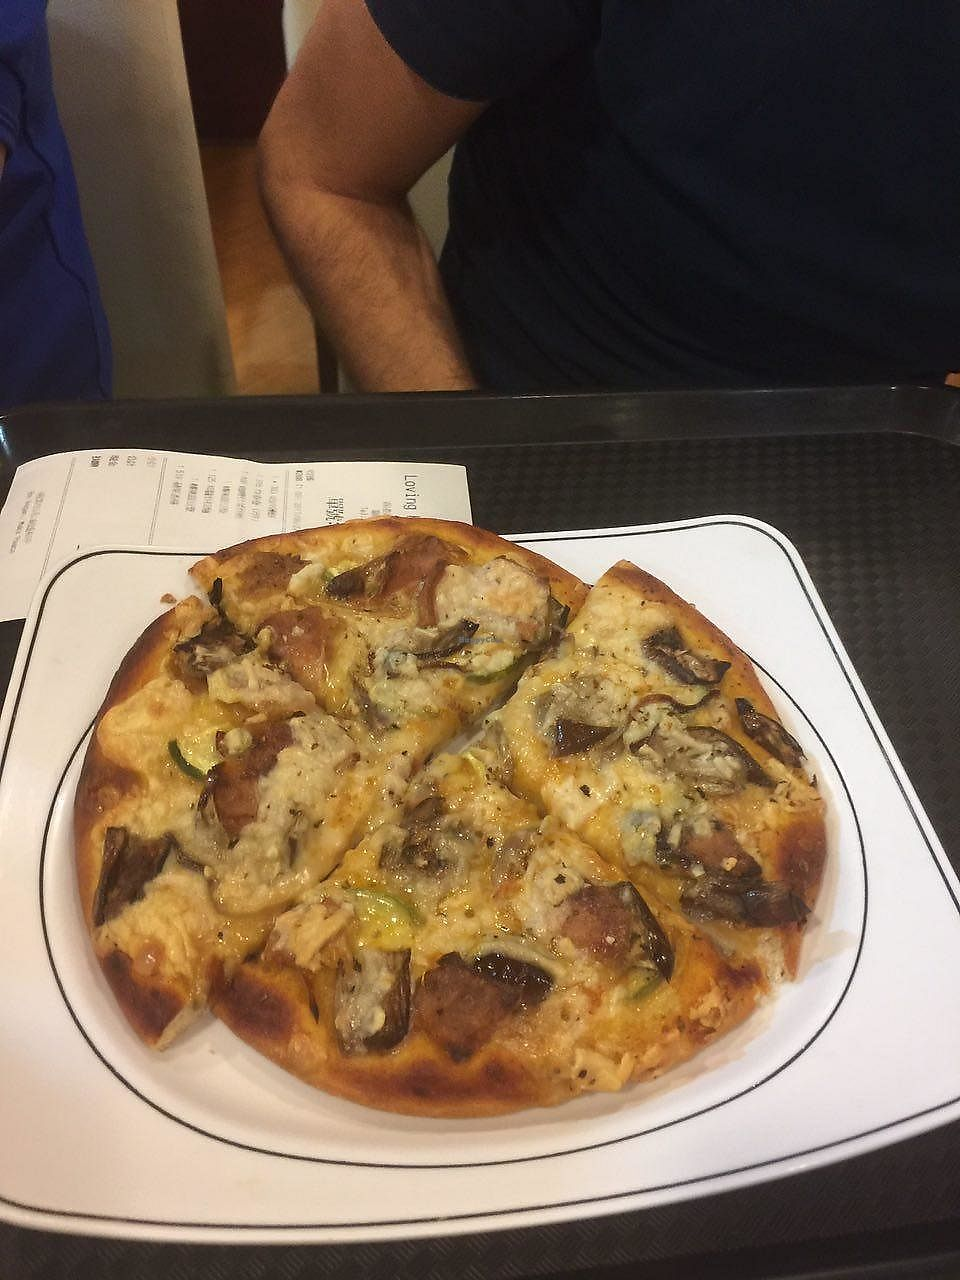 """Photo of Loving Hut - Wan Chai  by <a href=""""/members/profile/FlokiTheCat"""">FlokiTheCat</a> <br/>Vegan cheese pizza <br/> June 29, 2017  - <a href='/contact/abuse/image/19570/274648'>Report</a>"""